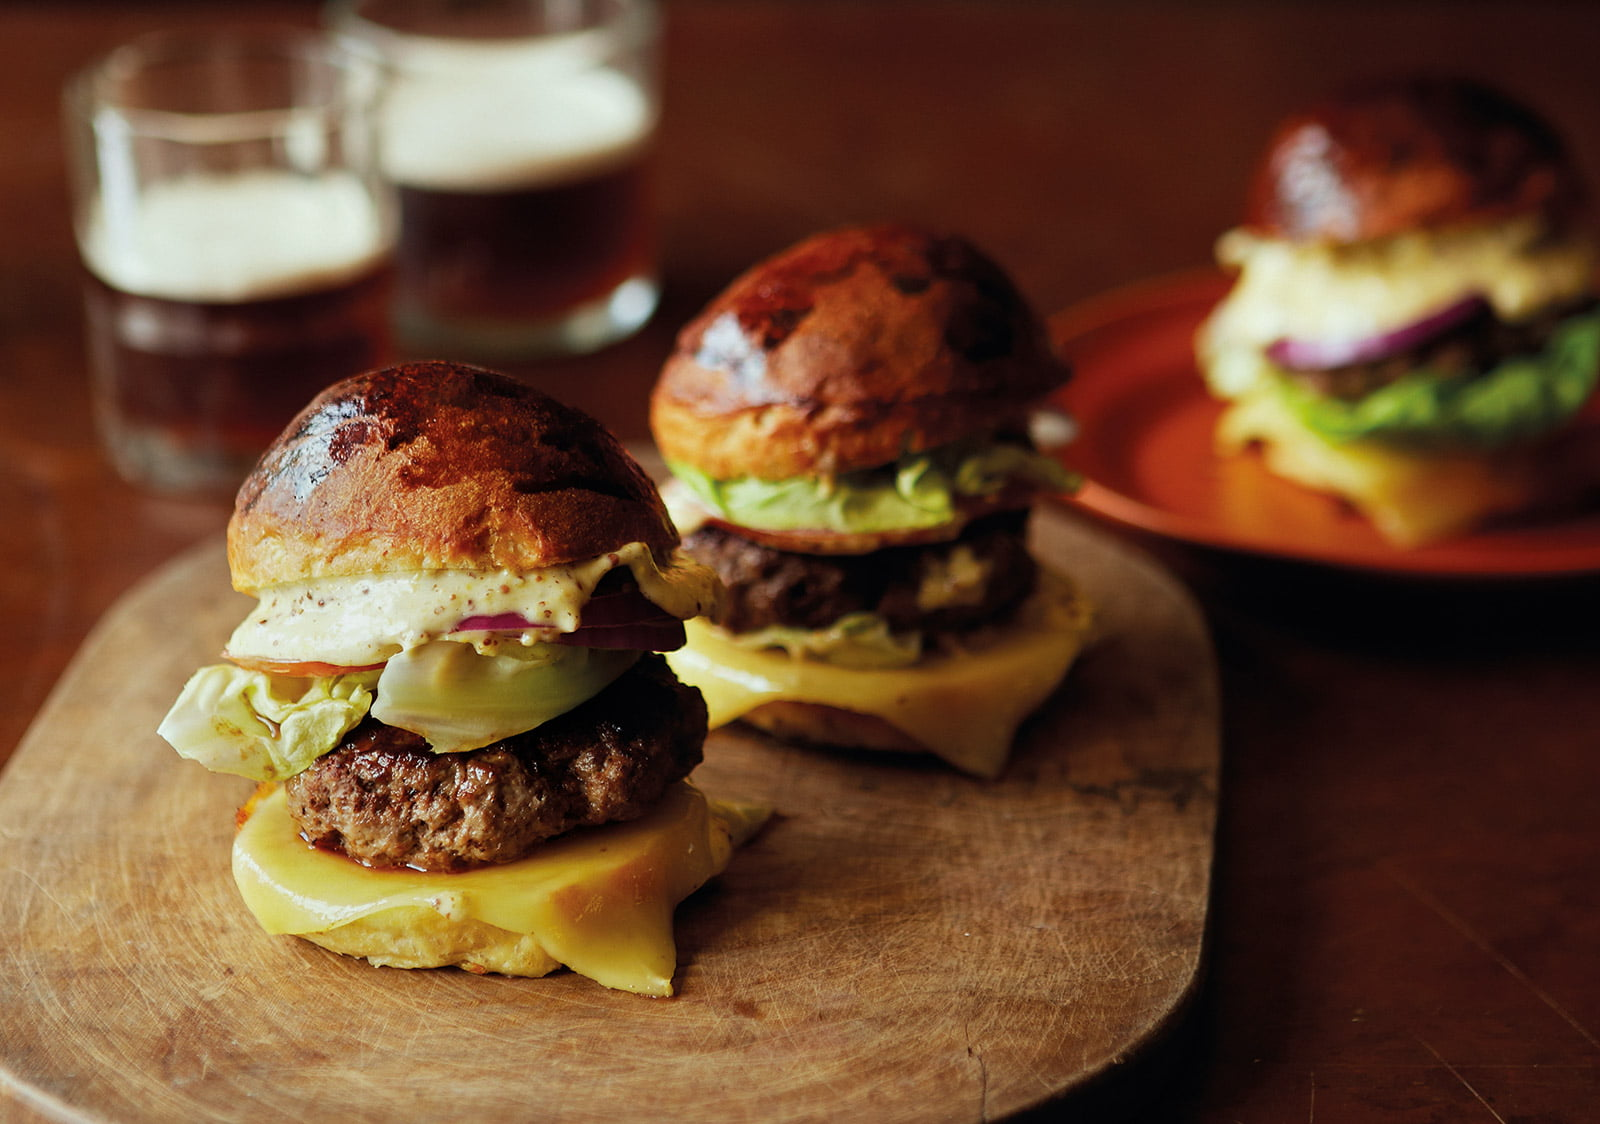 The Ultimate Burger James Martin Chef